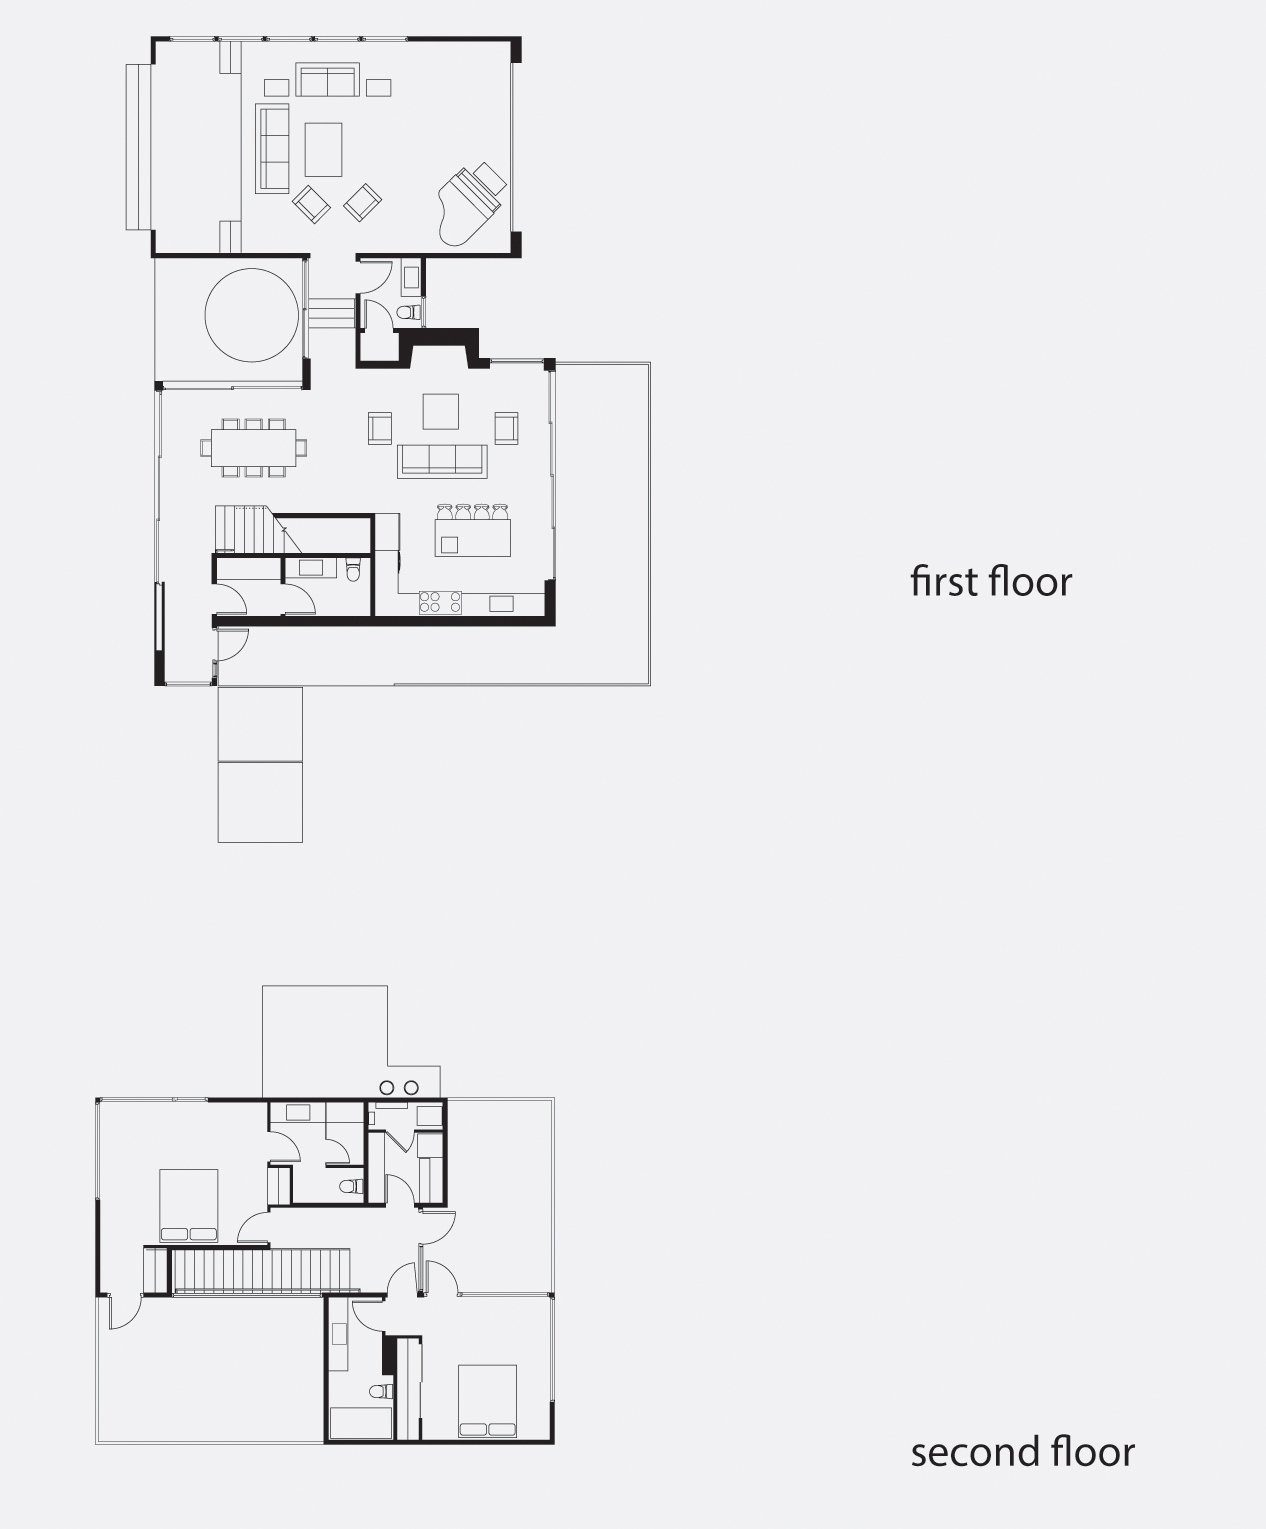 Oak Pass Tree House Floor Plan  Photo 11 of 11 in Wouldn't You Like to Have Your Own Private Concerts at Home?